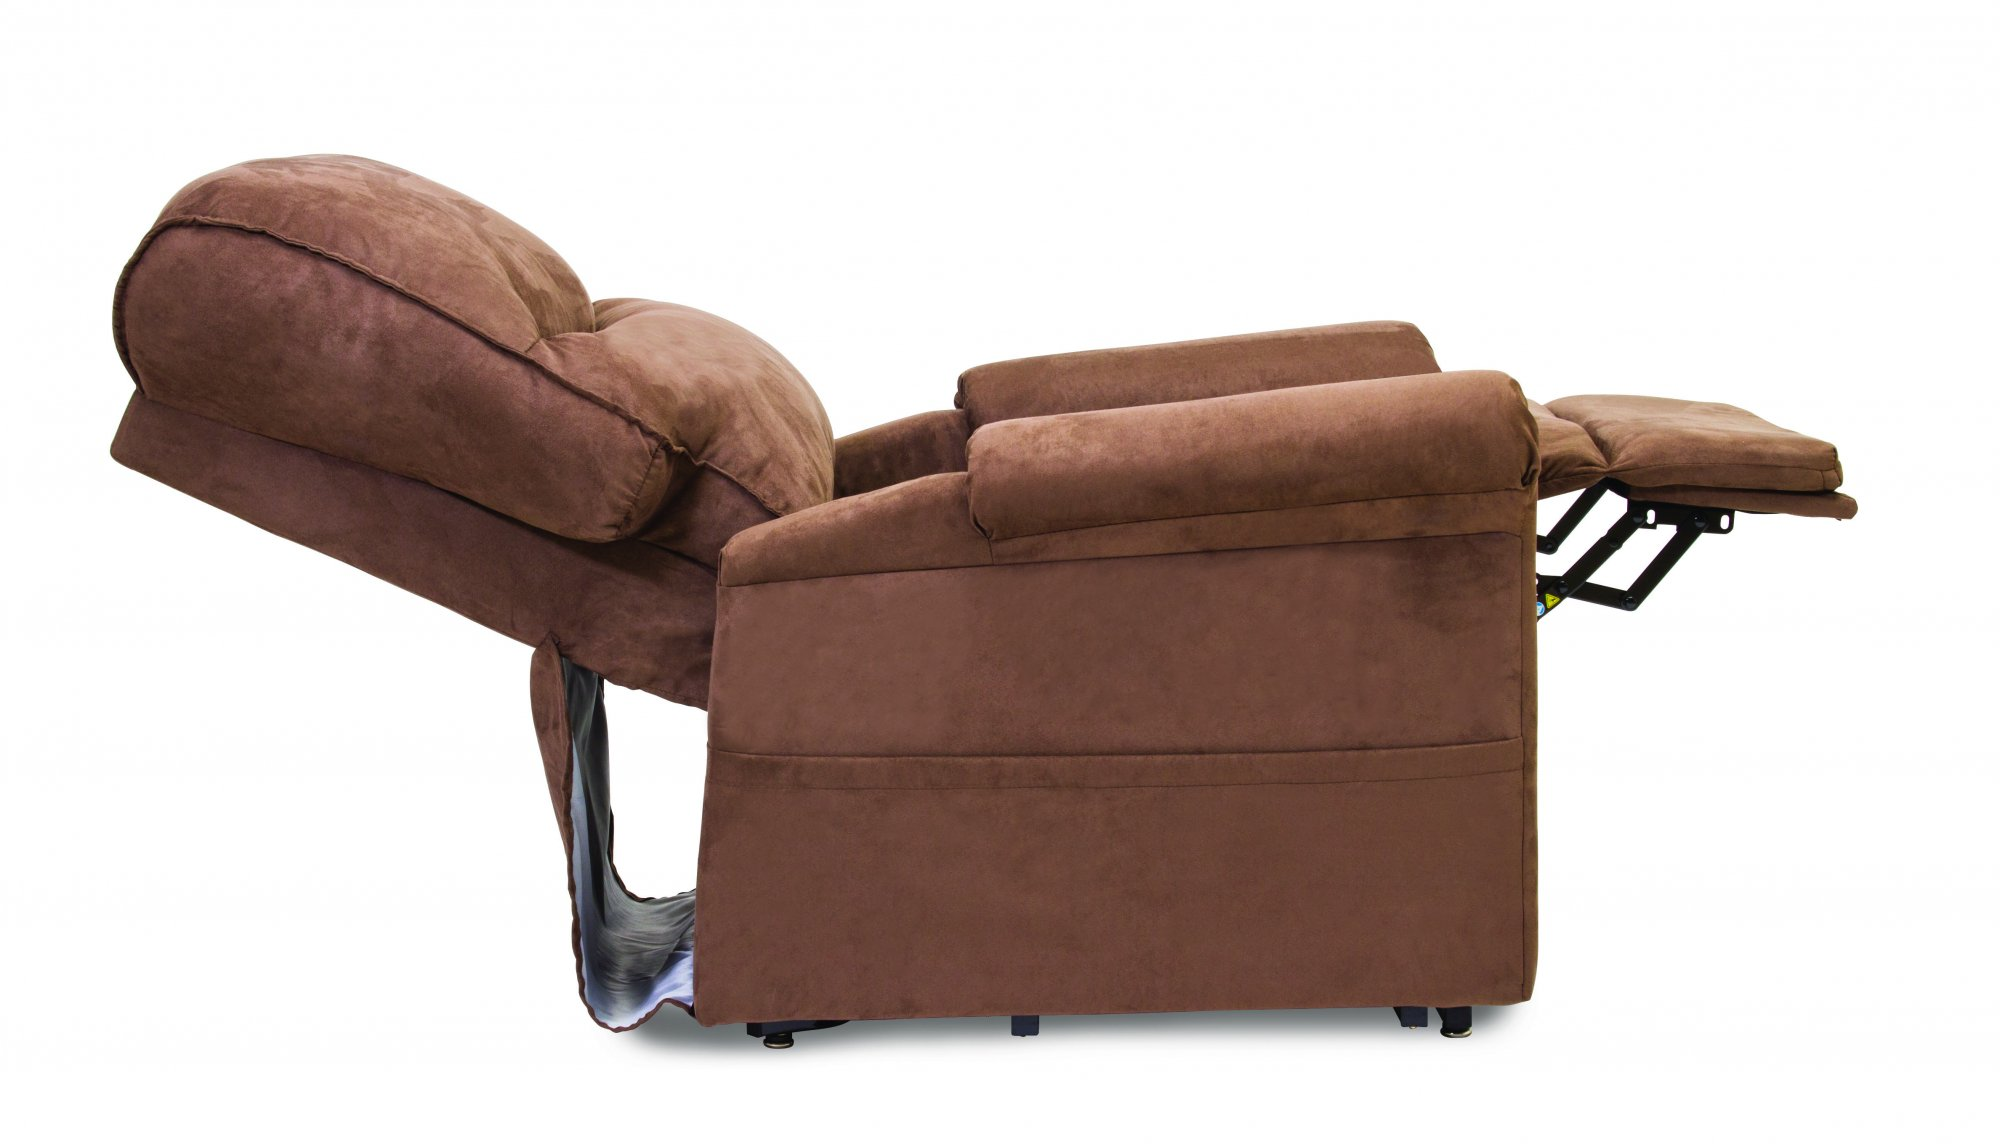 LC 105 3 POSITION LIFT CHAIR